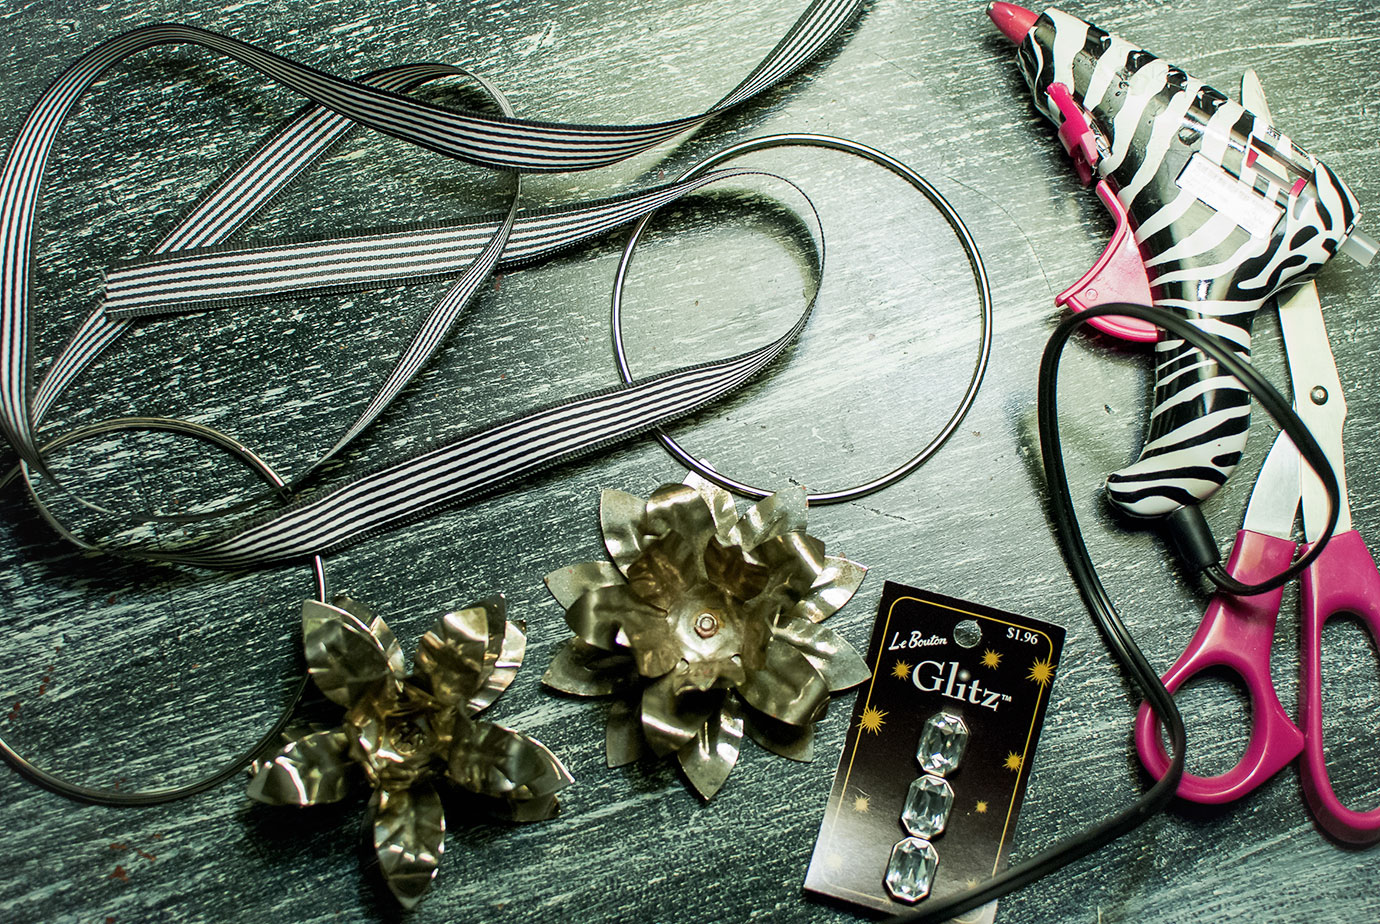 Supplies needed to make a Vintage Style Metal Wreath